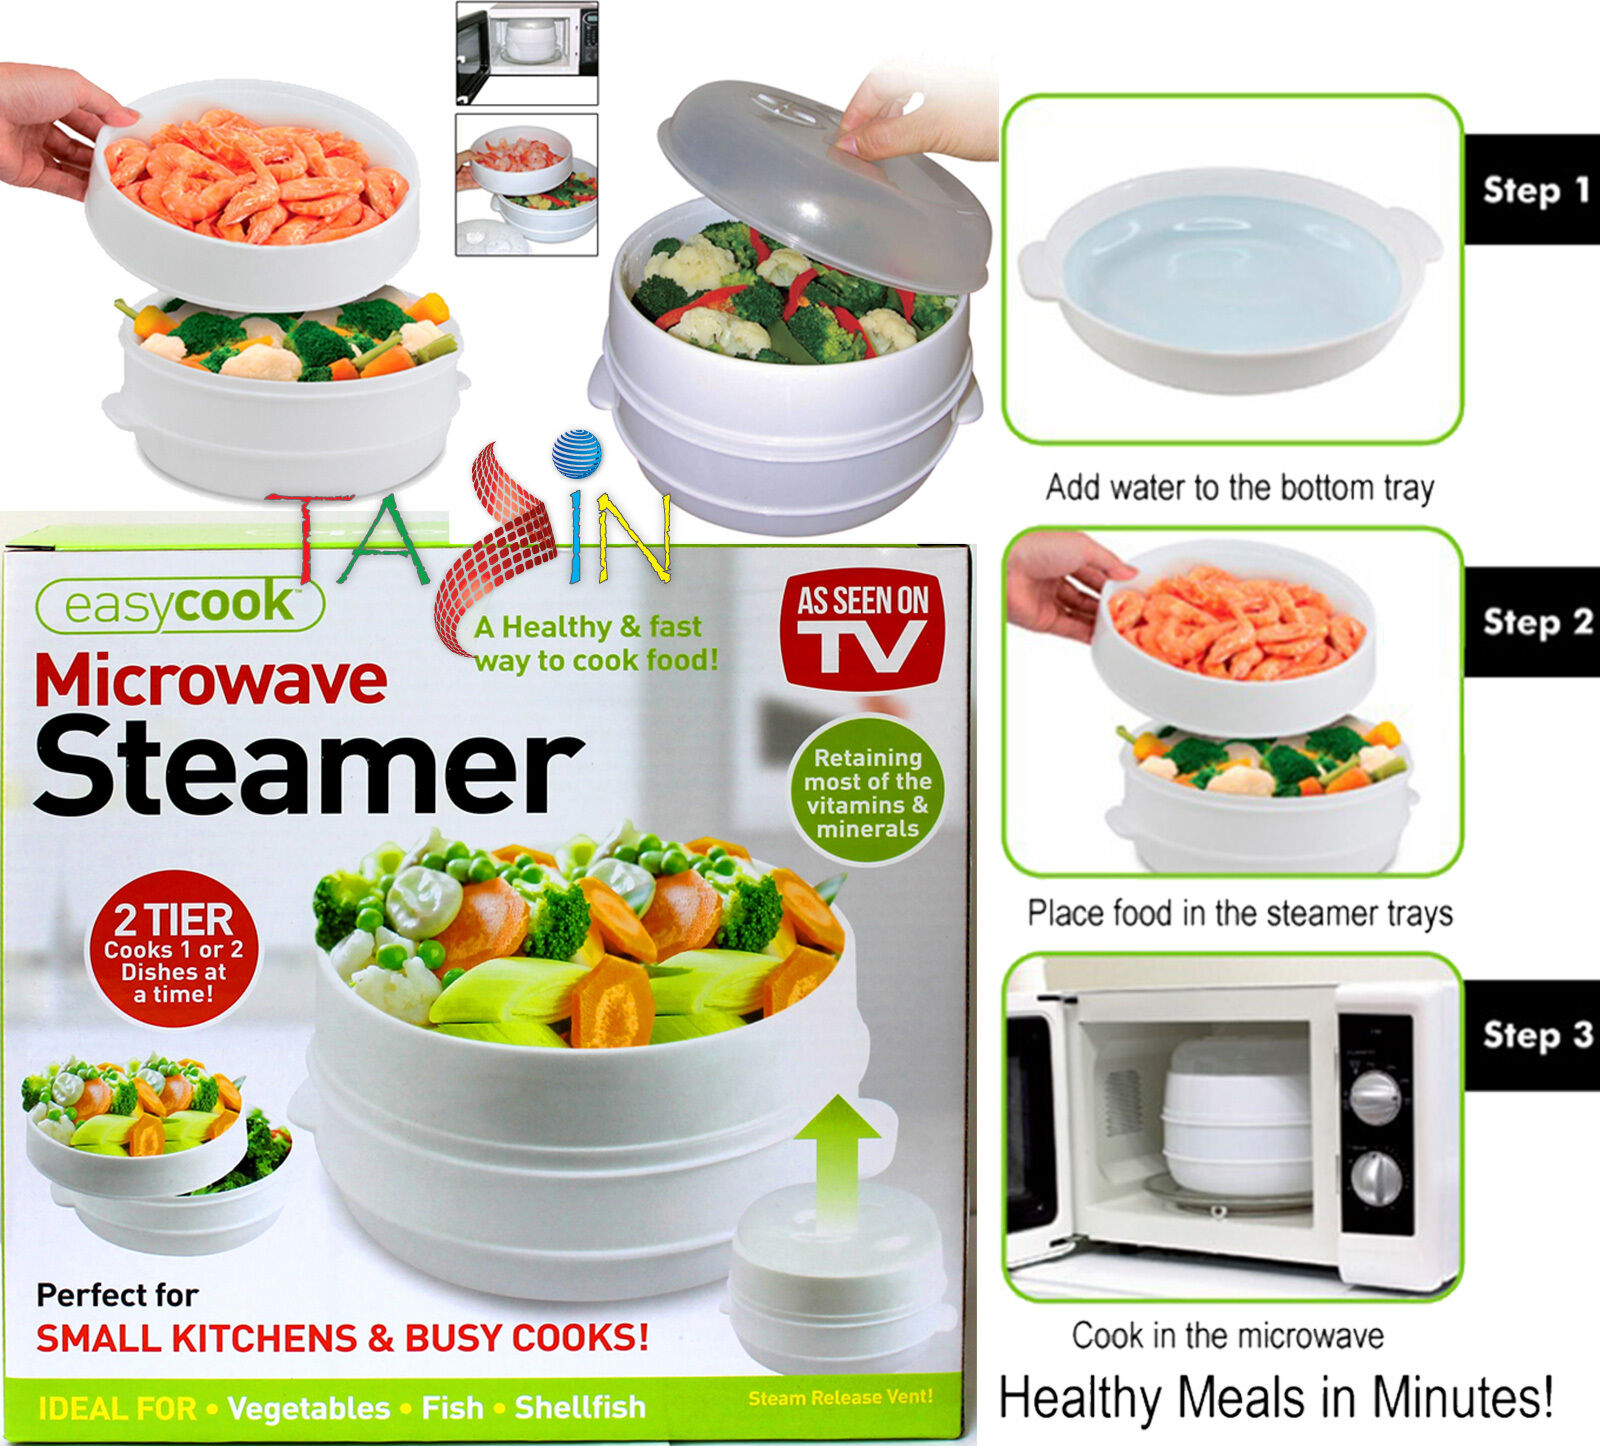 A Healthy And Fast Way To Cook Food This Two Tiered Steamer Is Ideal For People With Limited Cooking Kitchen E In Their Home